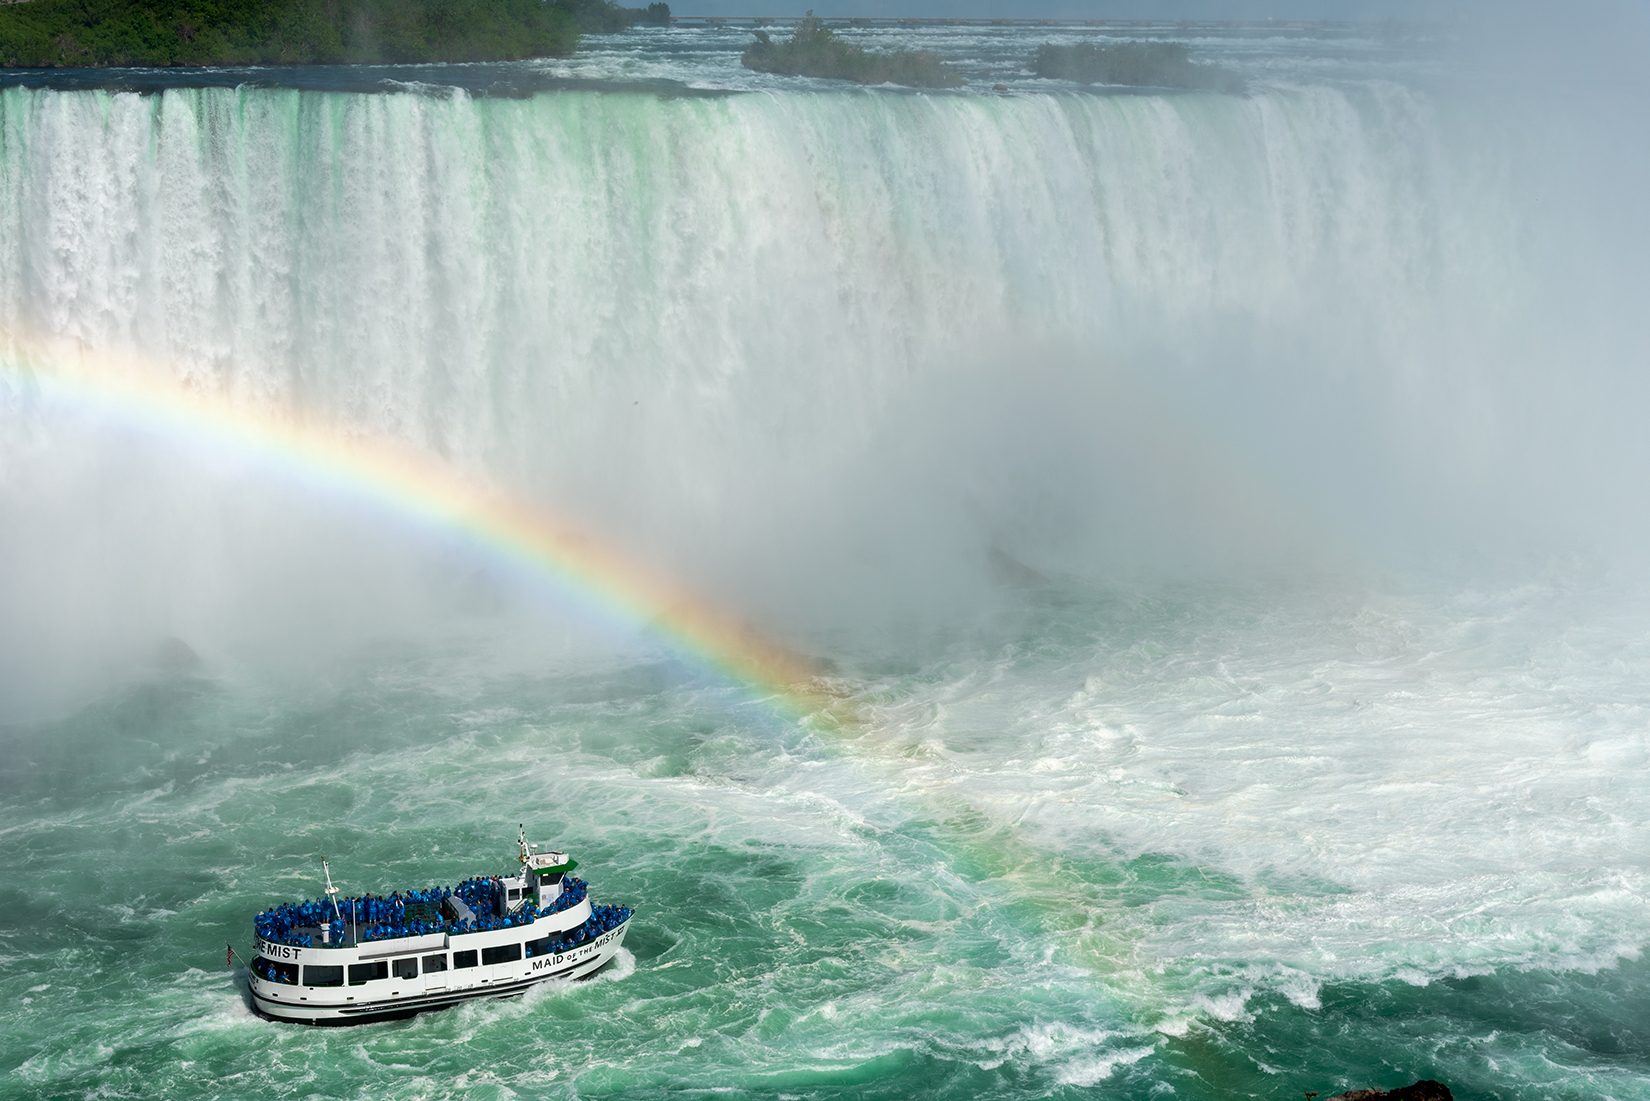 'Maid of the Mist' boat cruise which carries passengers into the rapids immediately below the falls